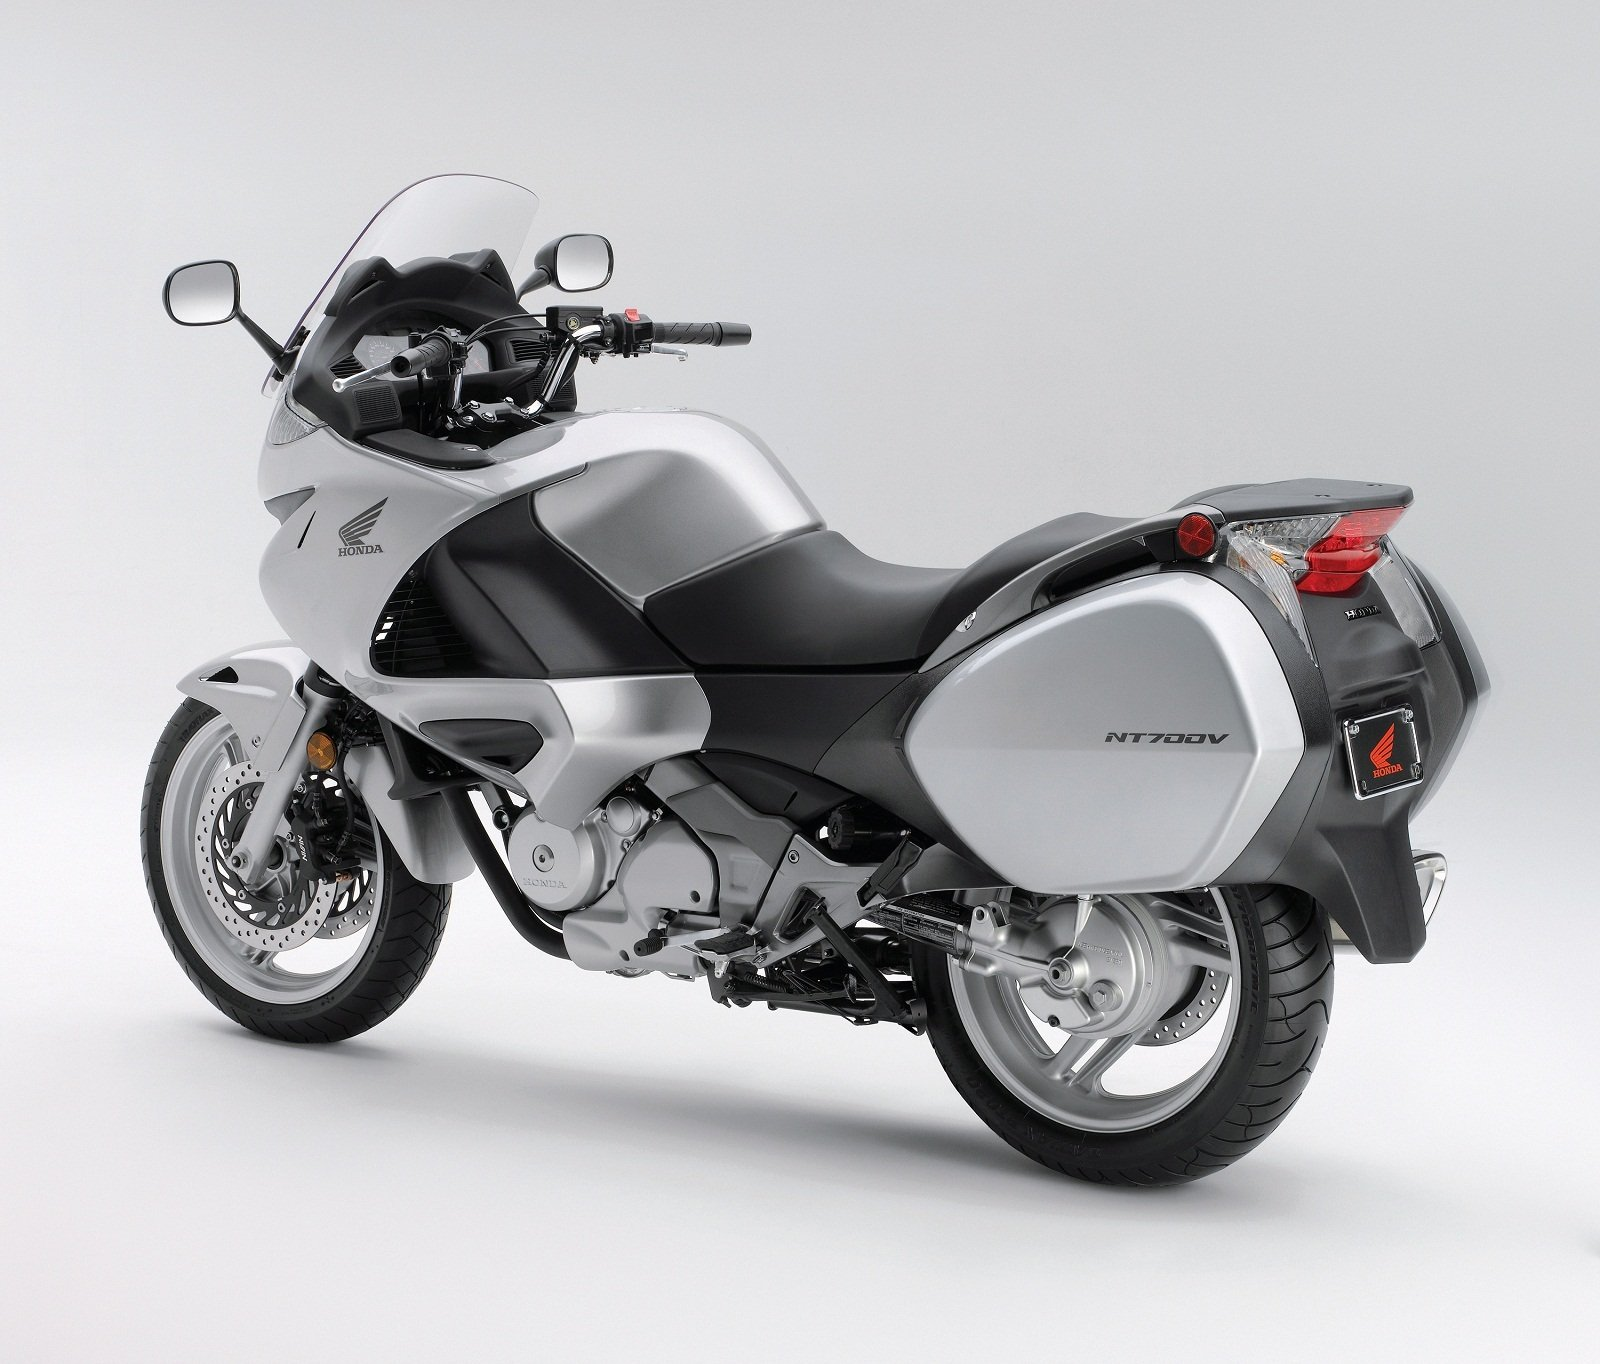 2011 honda nt700v picture 411129 motorcycle review. Black Bedroom Furniture Sets. Home Design Ideas